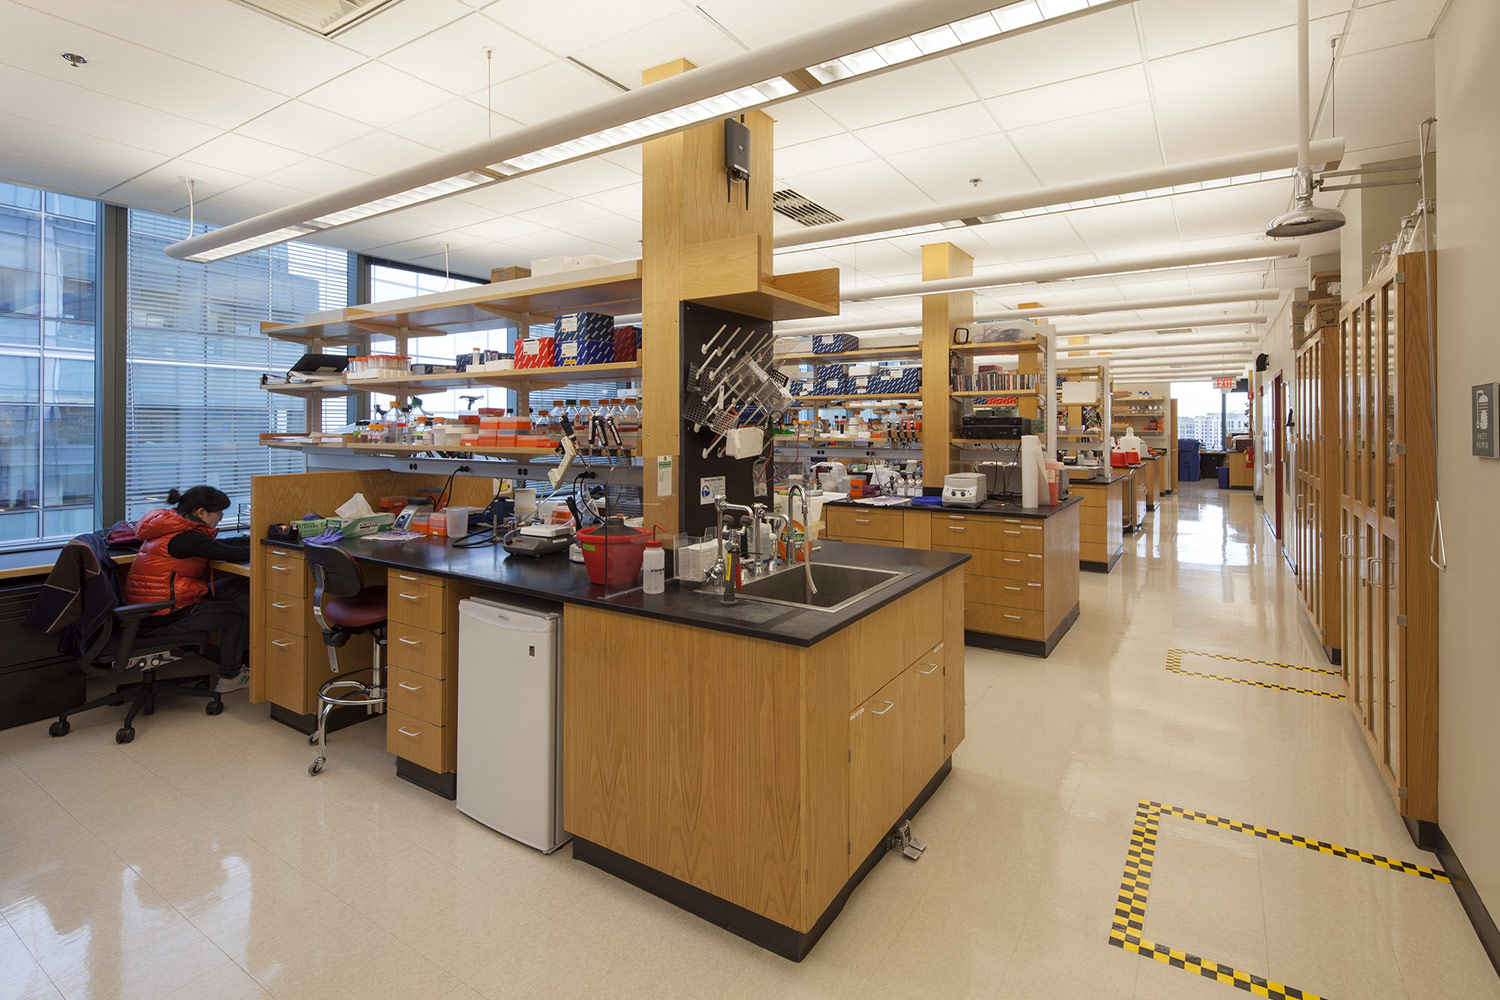 HMS, Microbiology and Immunobiology Labs